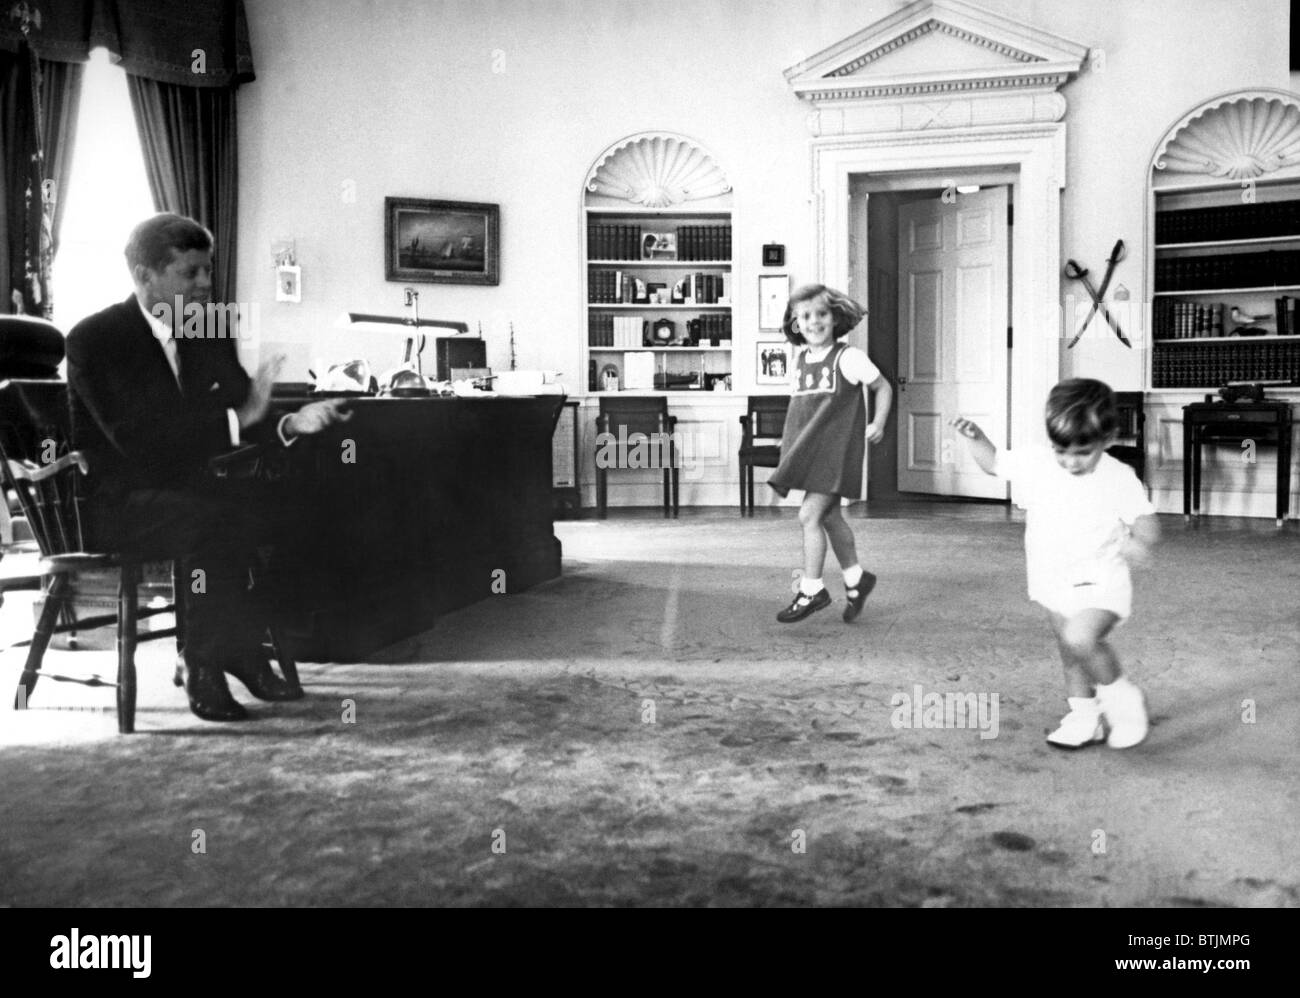 john f kennedy in oval office with children caroline